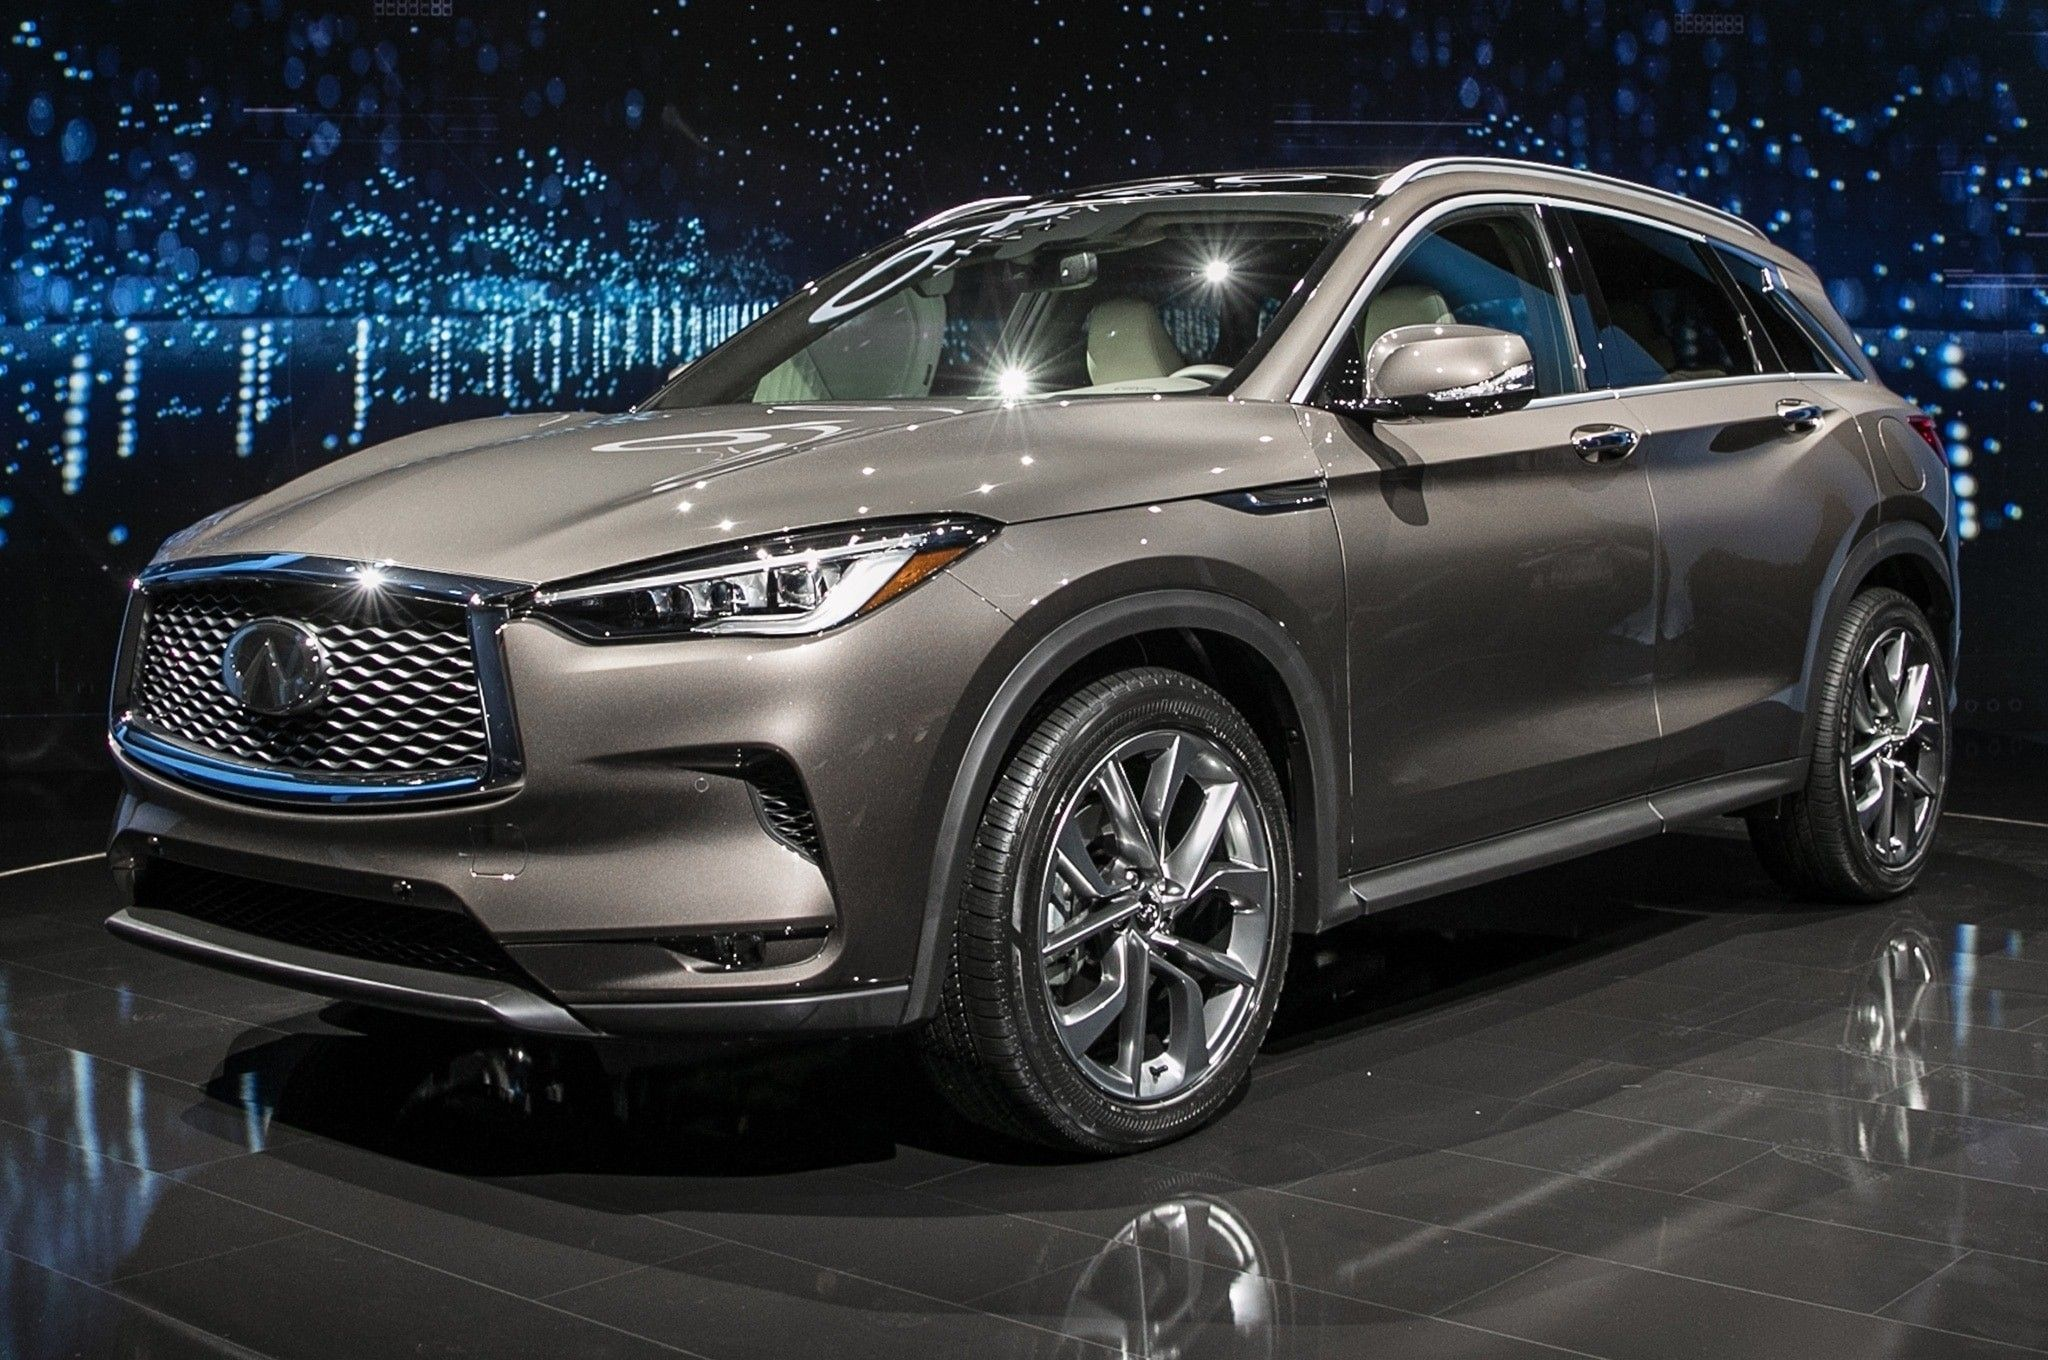 New 2019 Infiniti Fx35 New Interior Car Review 2019